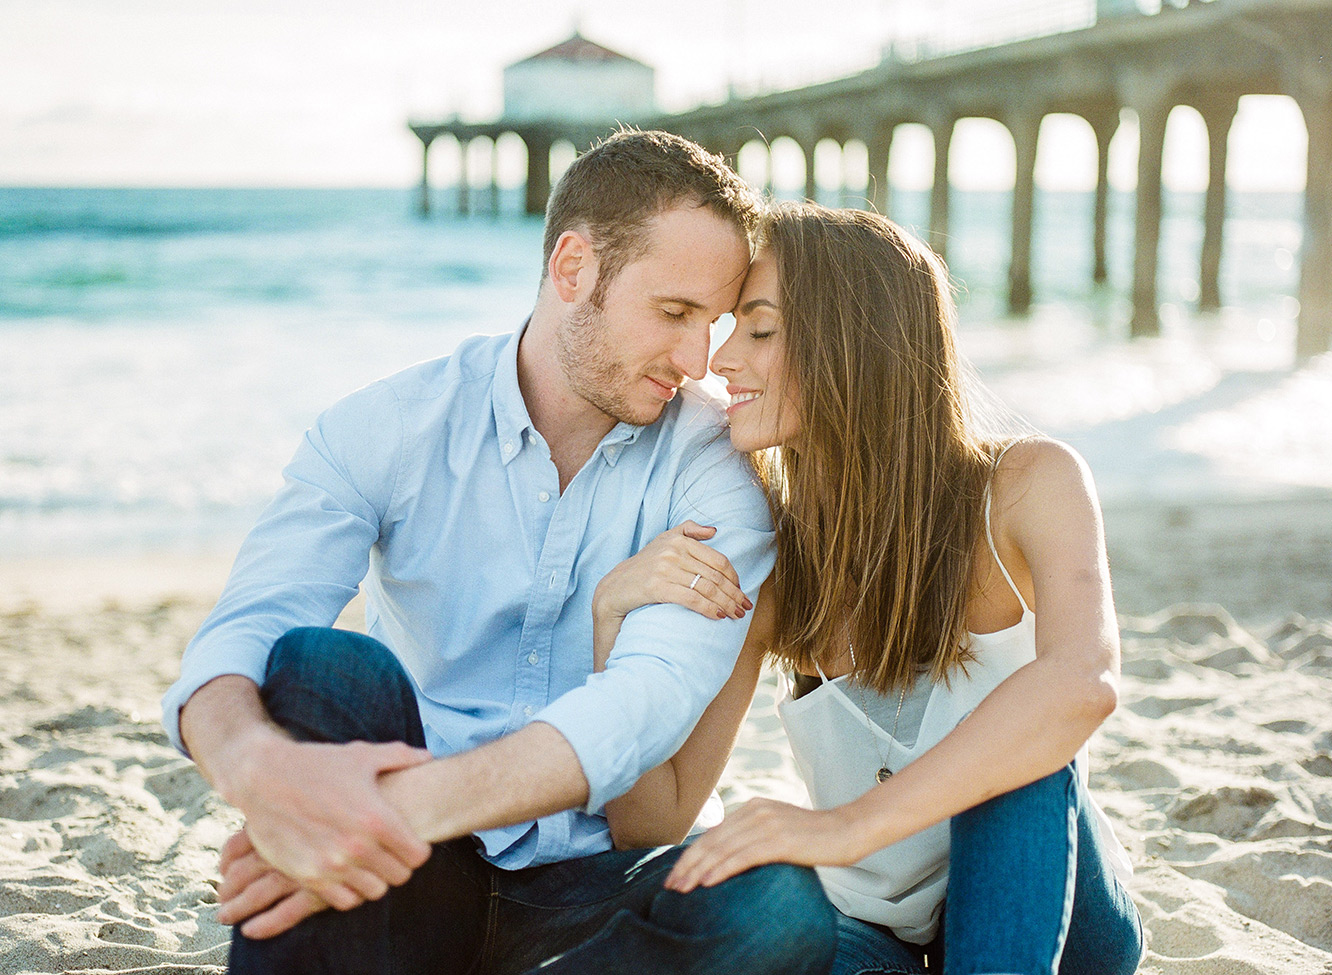 manhattan-beach-engagement-photos-1021